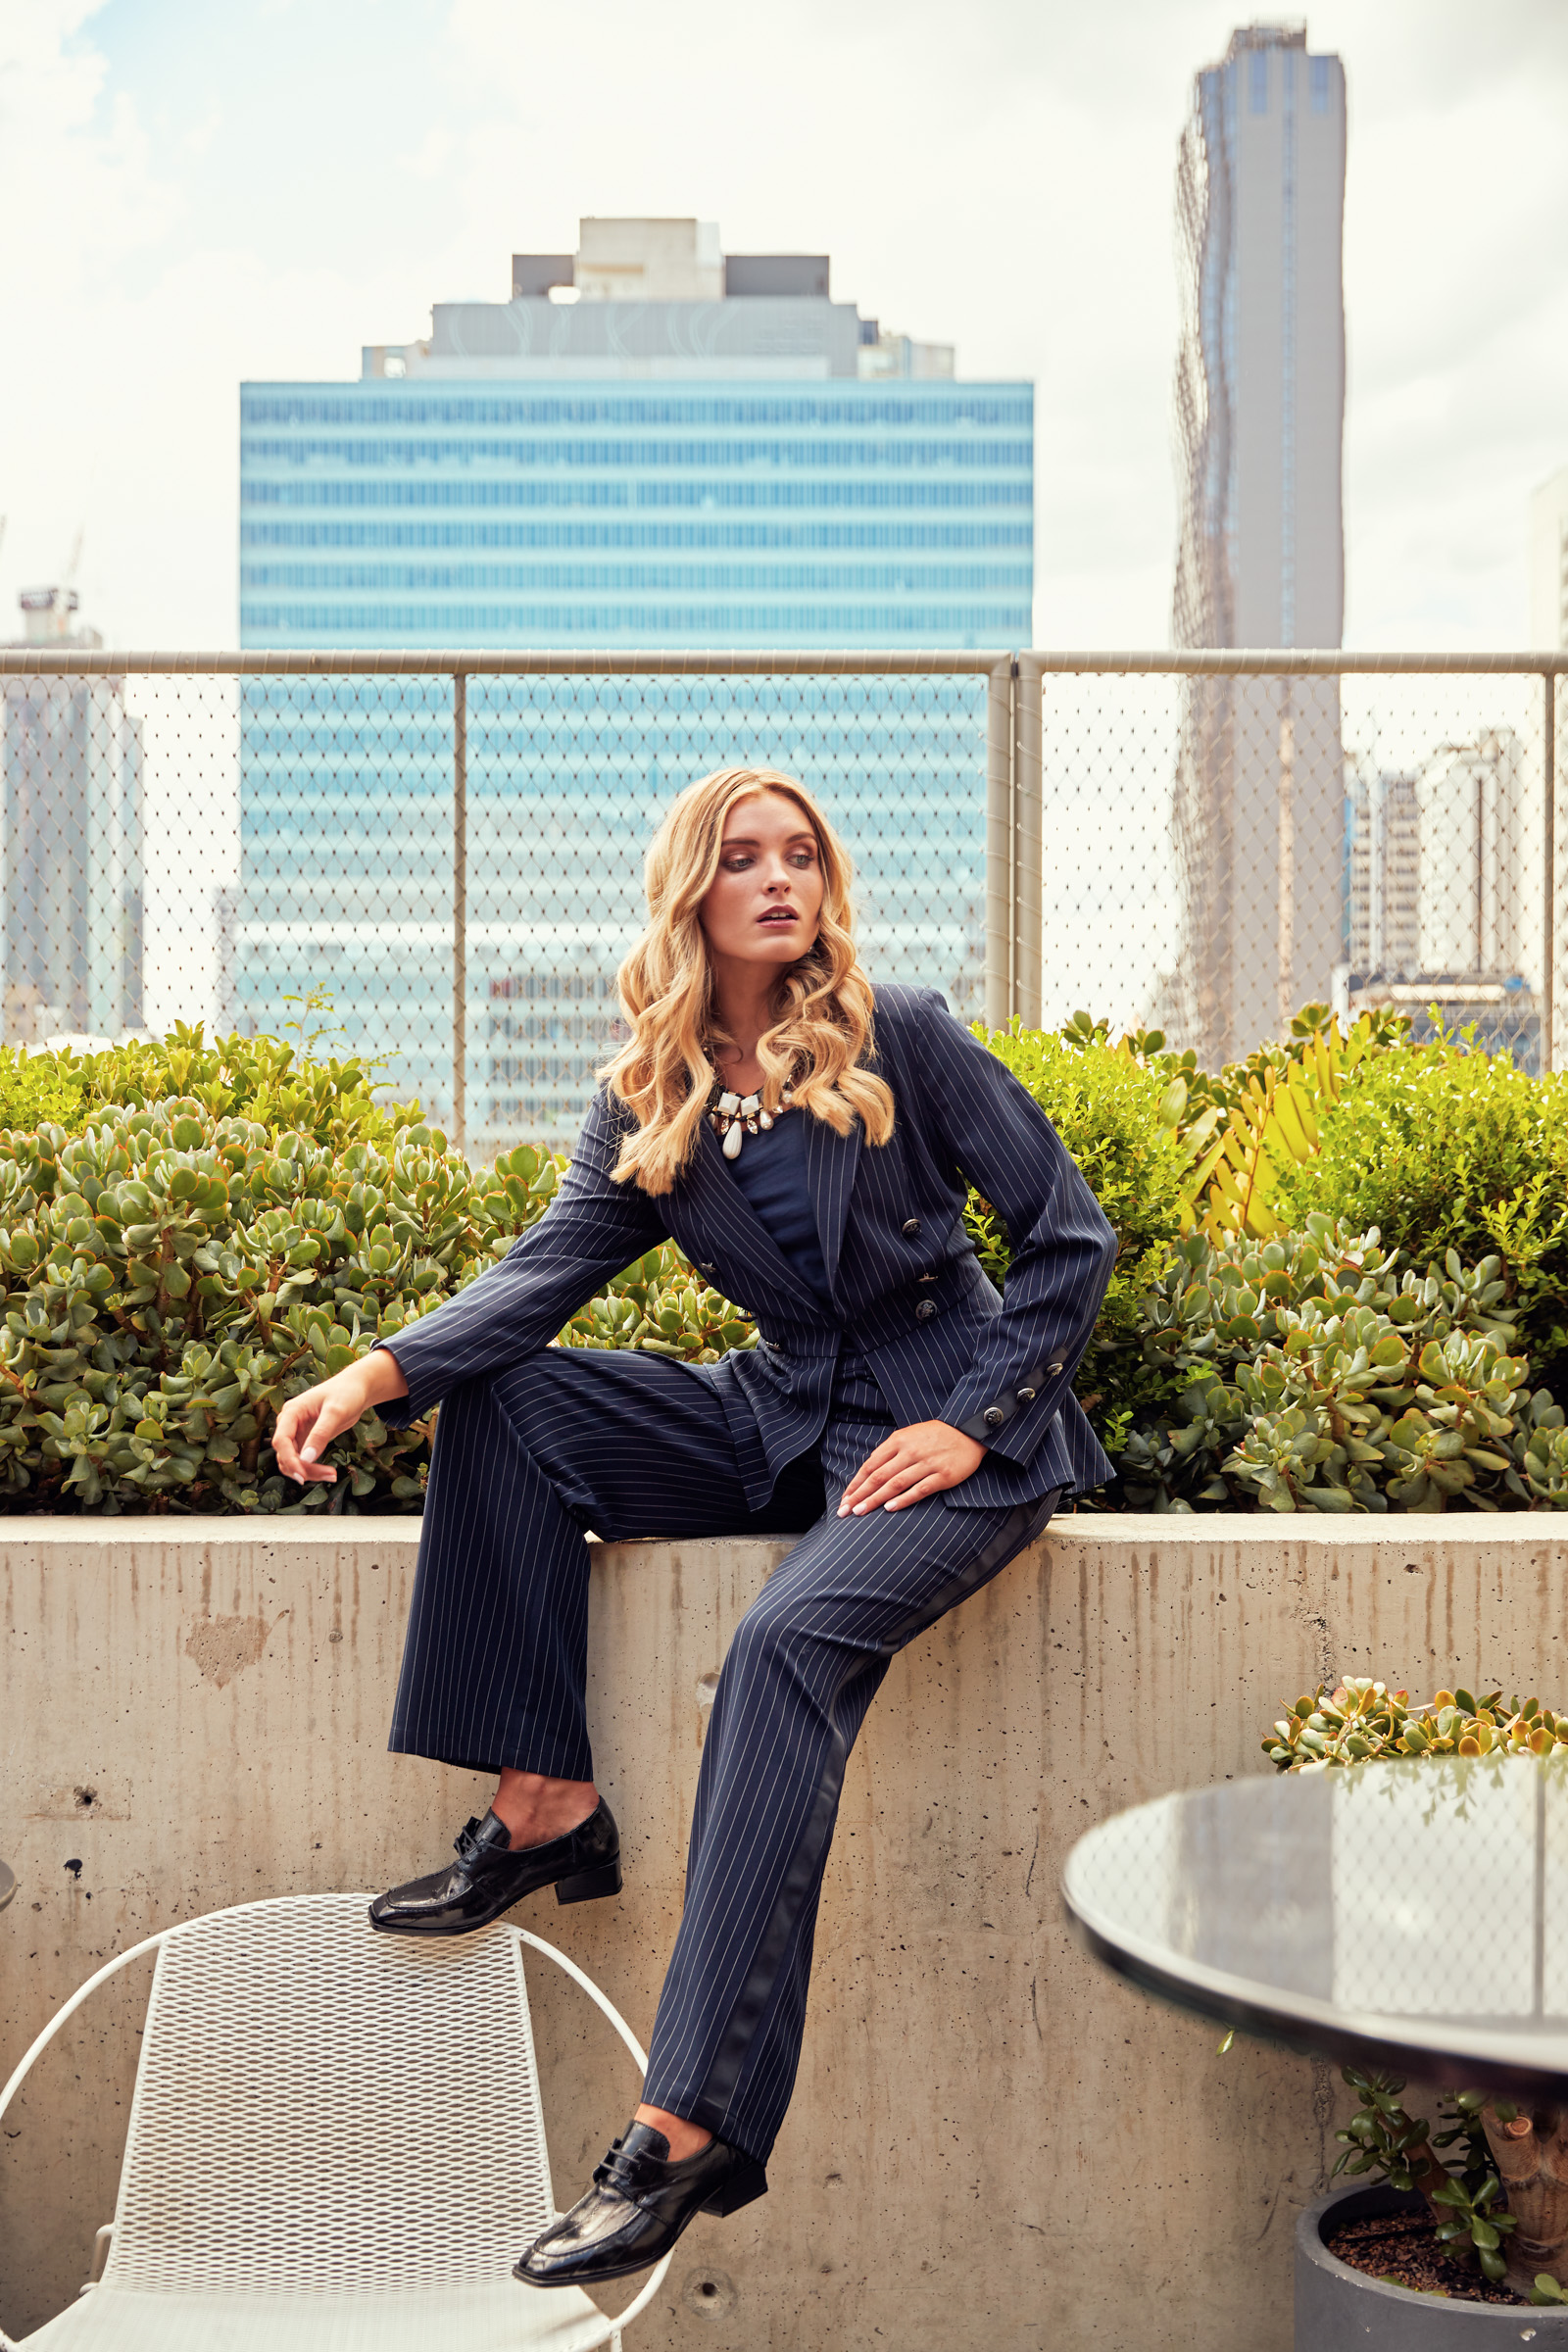 Model wears   Loobie's Story   Sunday Best Jacket, $349,   Loobie's Story   Sunday Best pants, $269,   Four Corners   earrings, necklace, $140, and   Beau Coop   s  Finsey brogues, $429. Photographed on the rooftop at   QT Melbourne  .